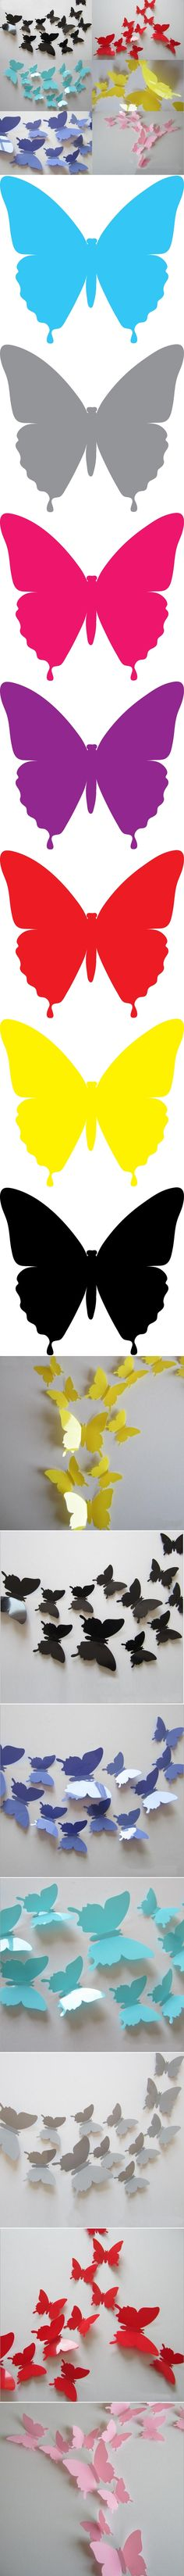 DIY Decorate Your Empty Wall with Butterflies | UsefulDIY.com